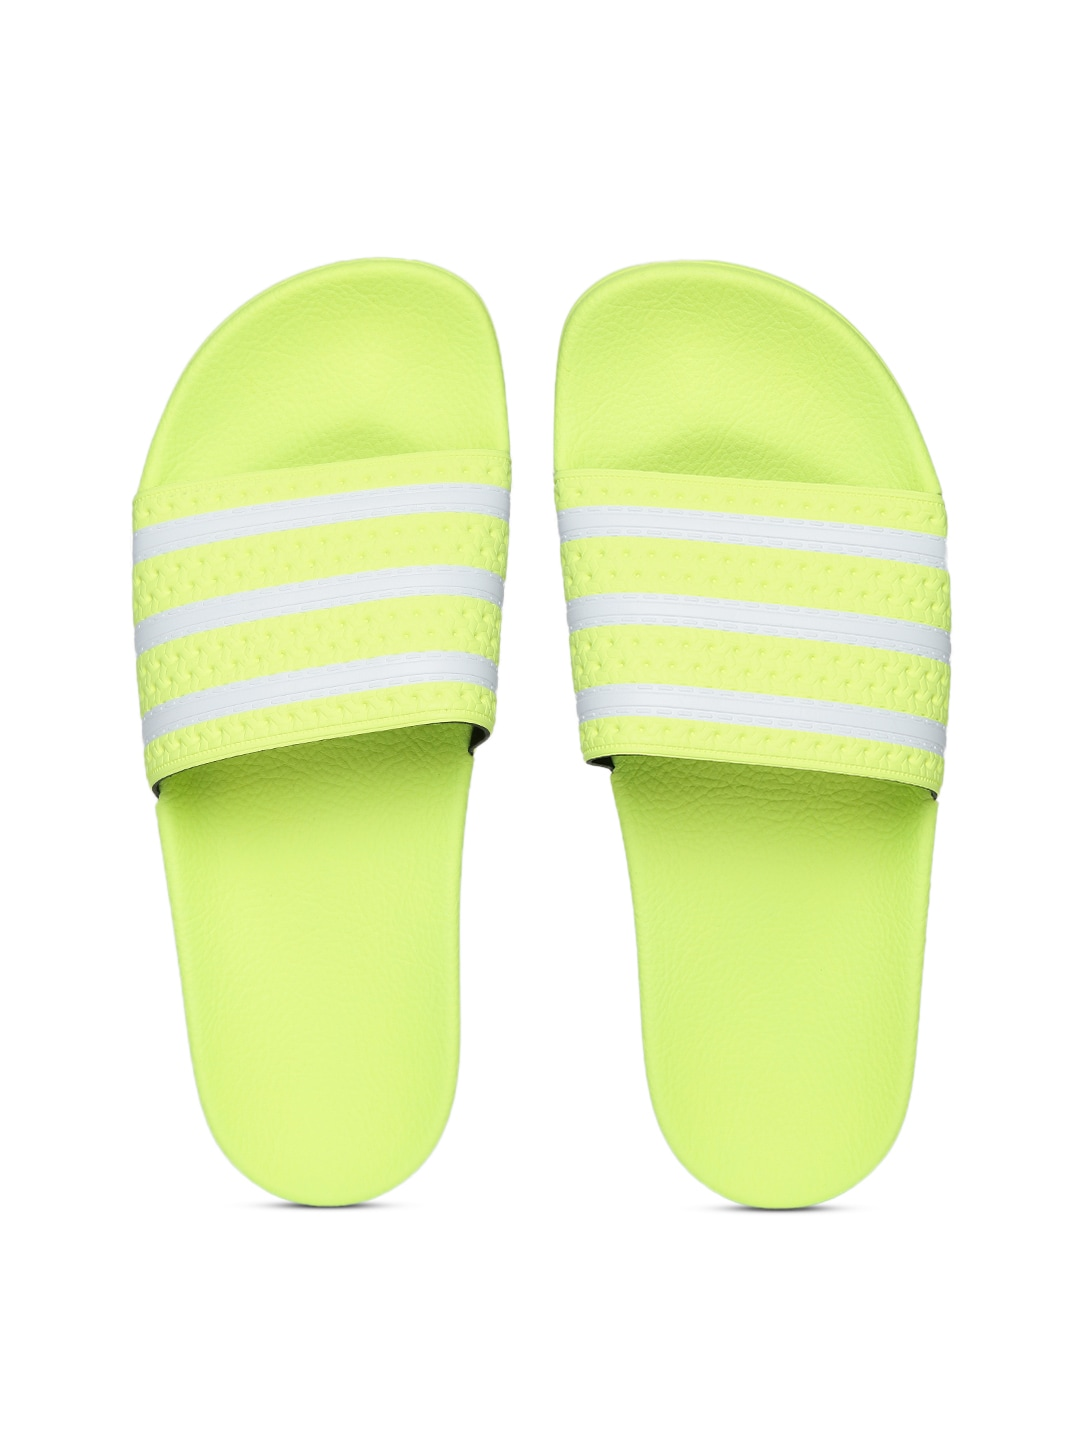 212083cd6ea900 Adidas Adilette - Buy Adidas Adilette online in India